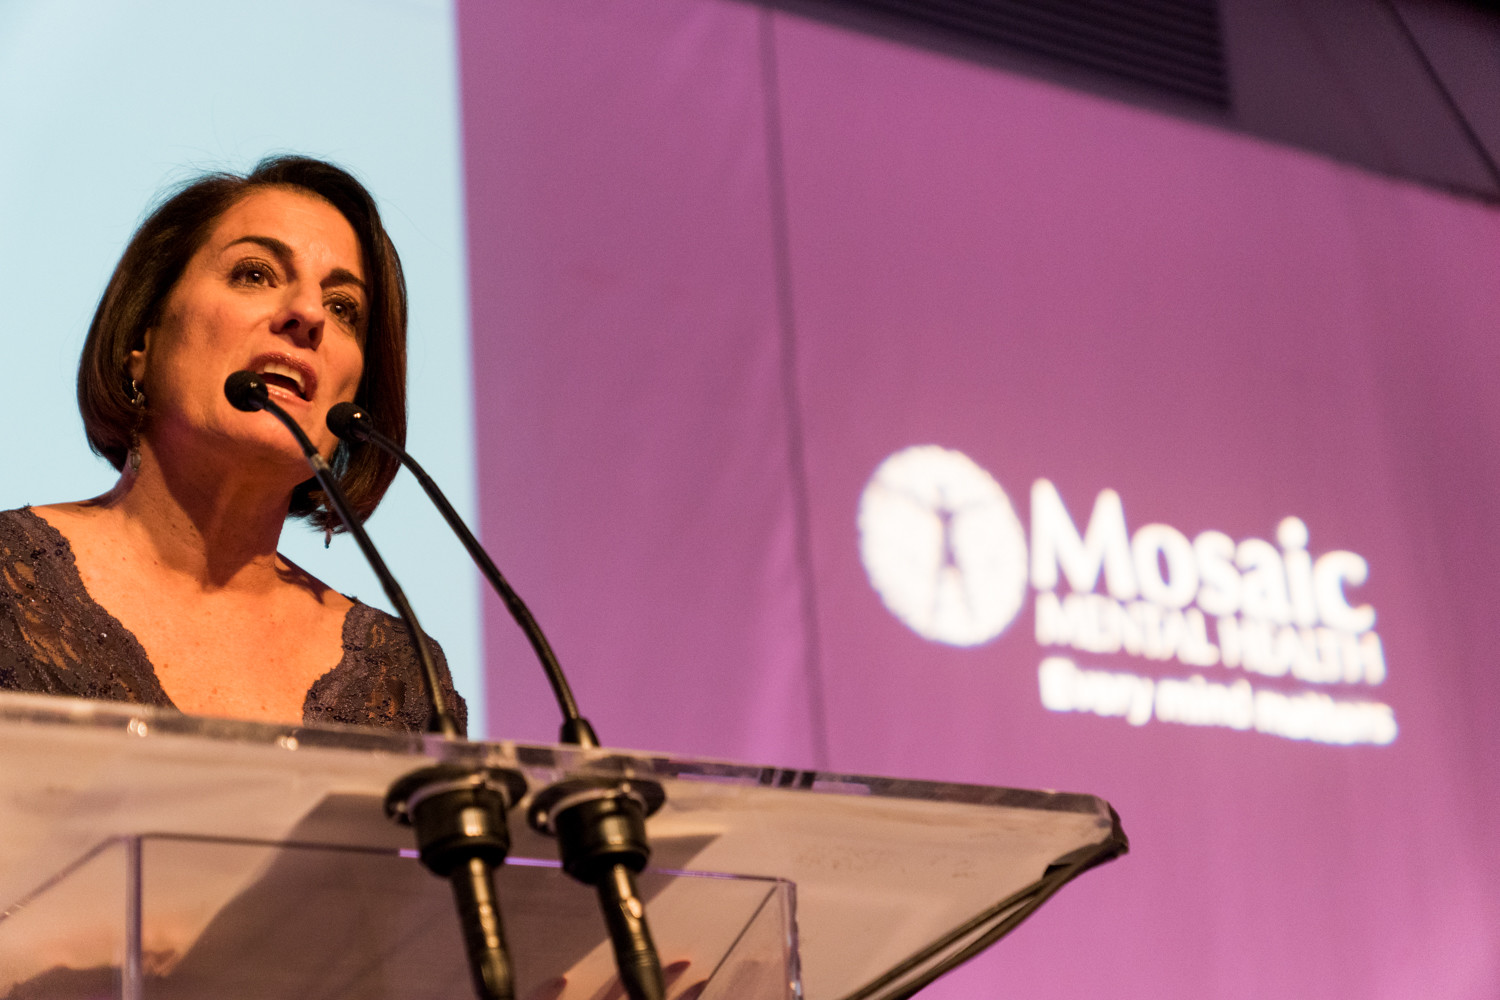 'We serve people from cradle to grave,' said Donna Demetri Friedman, the executive director of Mosaic Mental Health, at a gala celebrating the organization's rebranding. Some of its program includes on-site clinics, consultations at local public schools and vocational services.